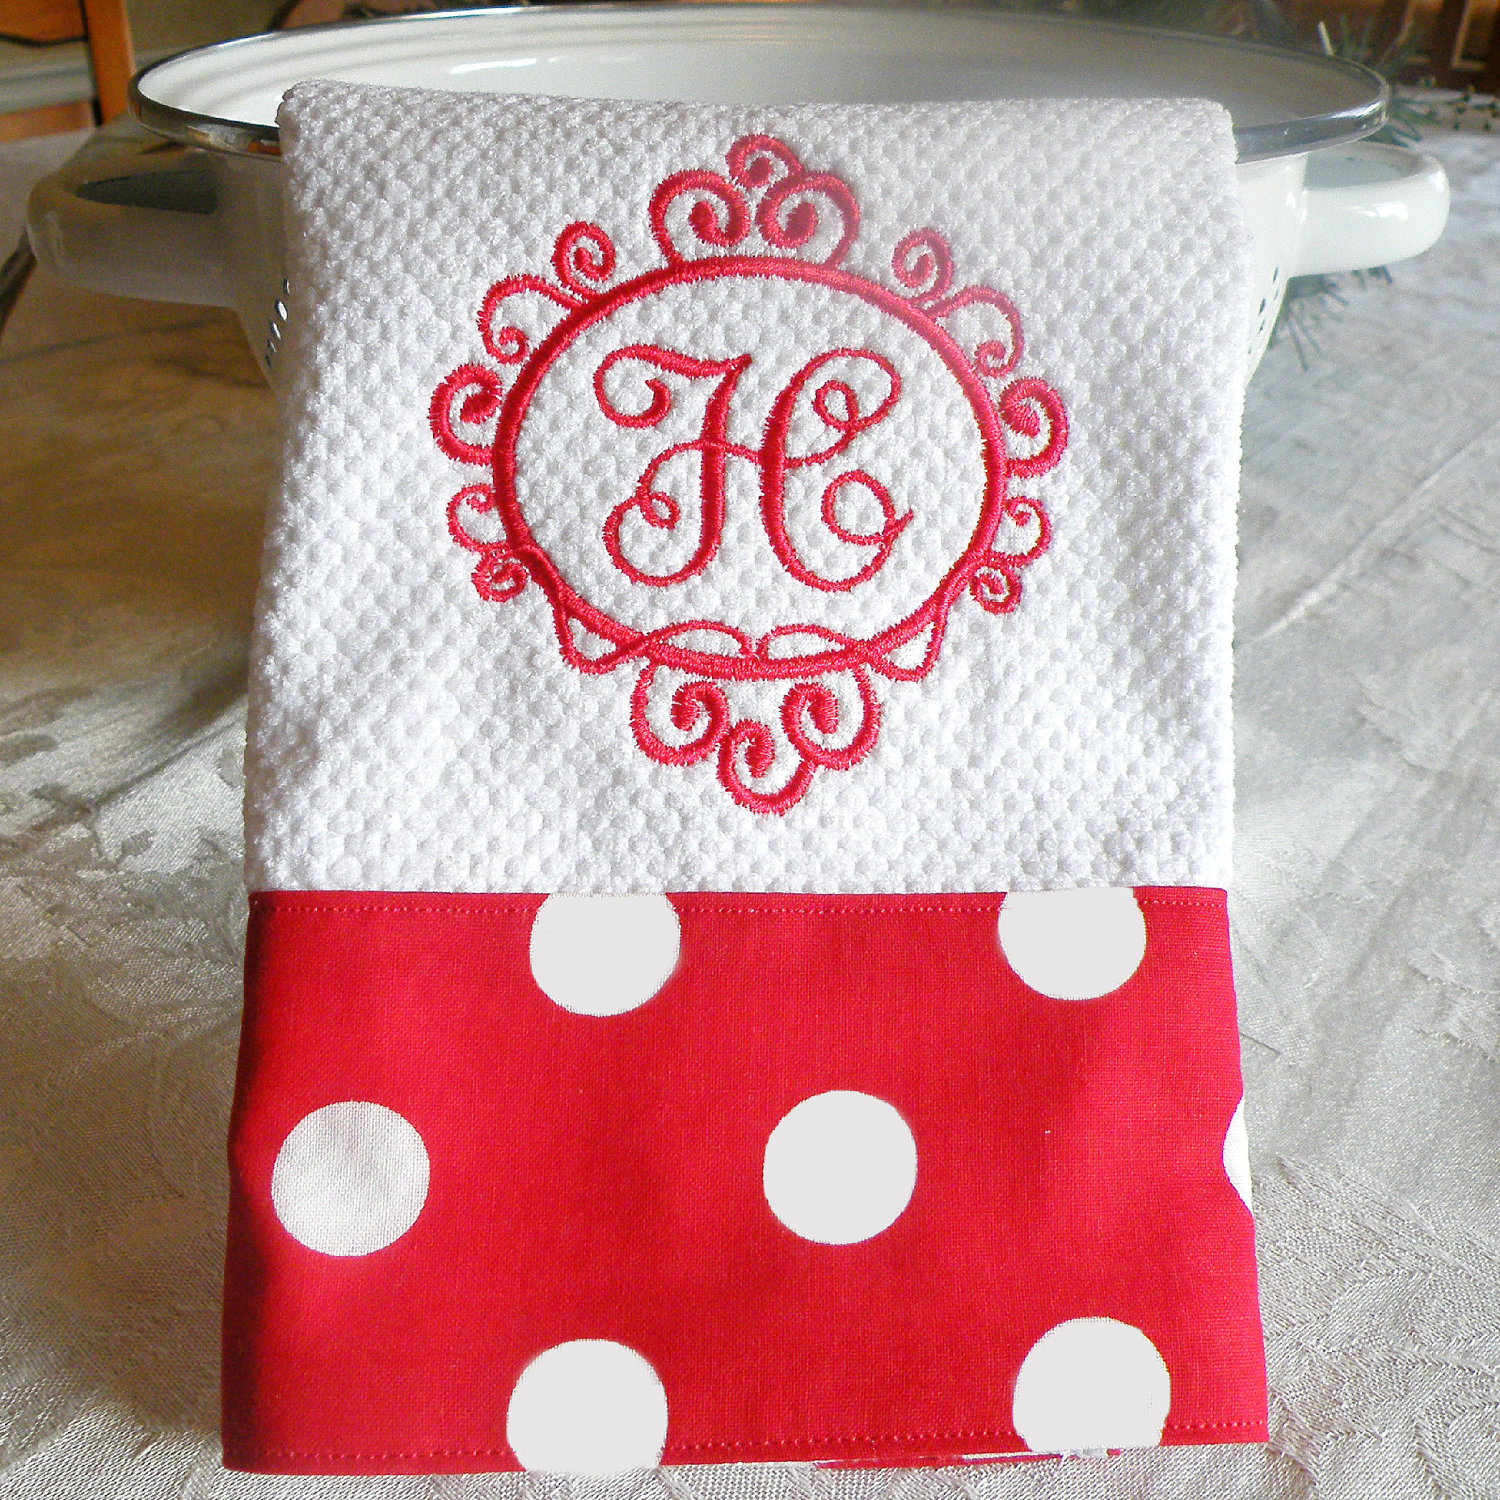 Chic Monogrammed Hand Towels With Decorative Logo Pattern Towel For Bathing Ideas